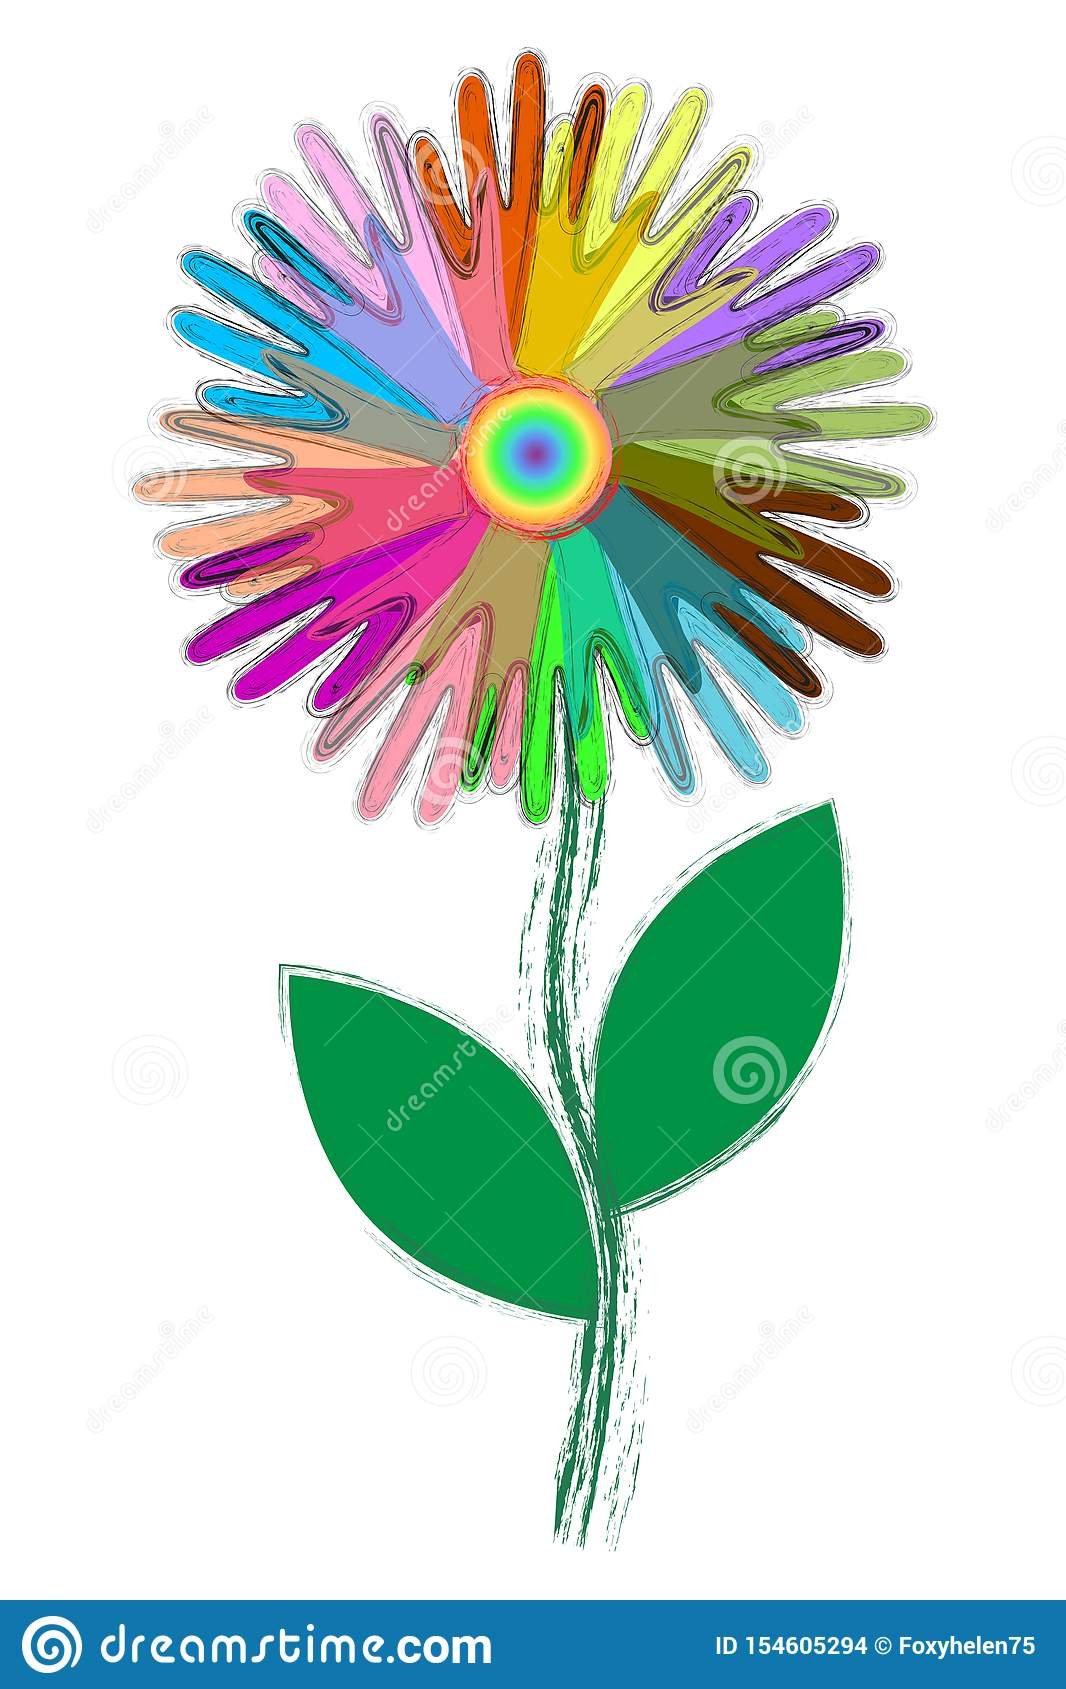 Colorful icons of people`s hands, like flower petals, concept of togetherness, mutual aid, fraternity, team